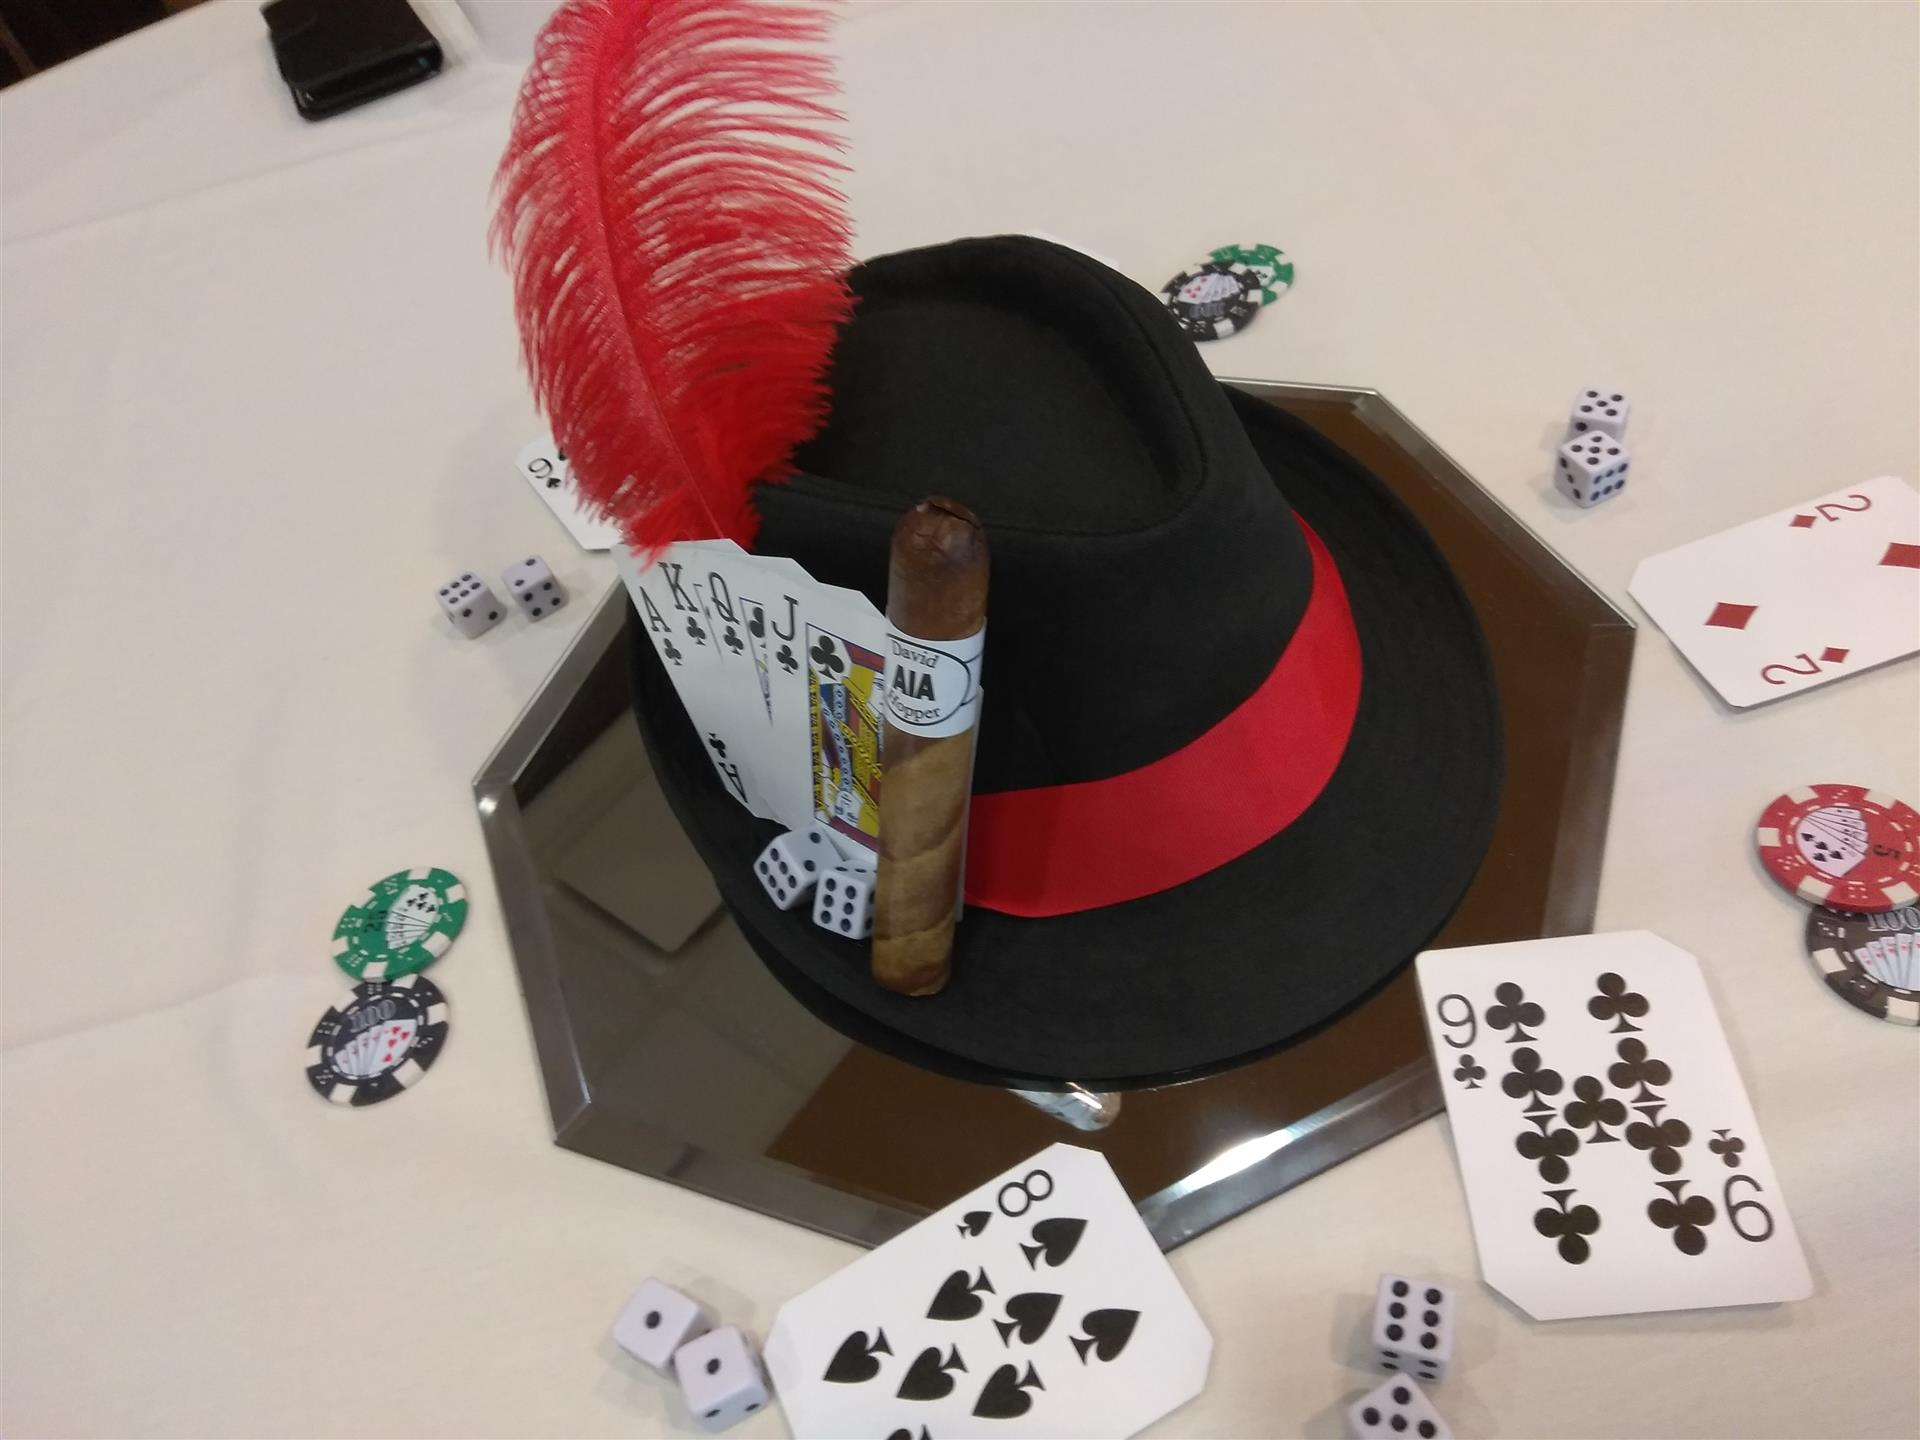 top hat for casino party with cigar, cards, poker chips, and dice